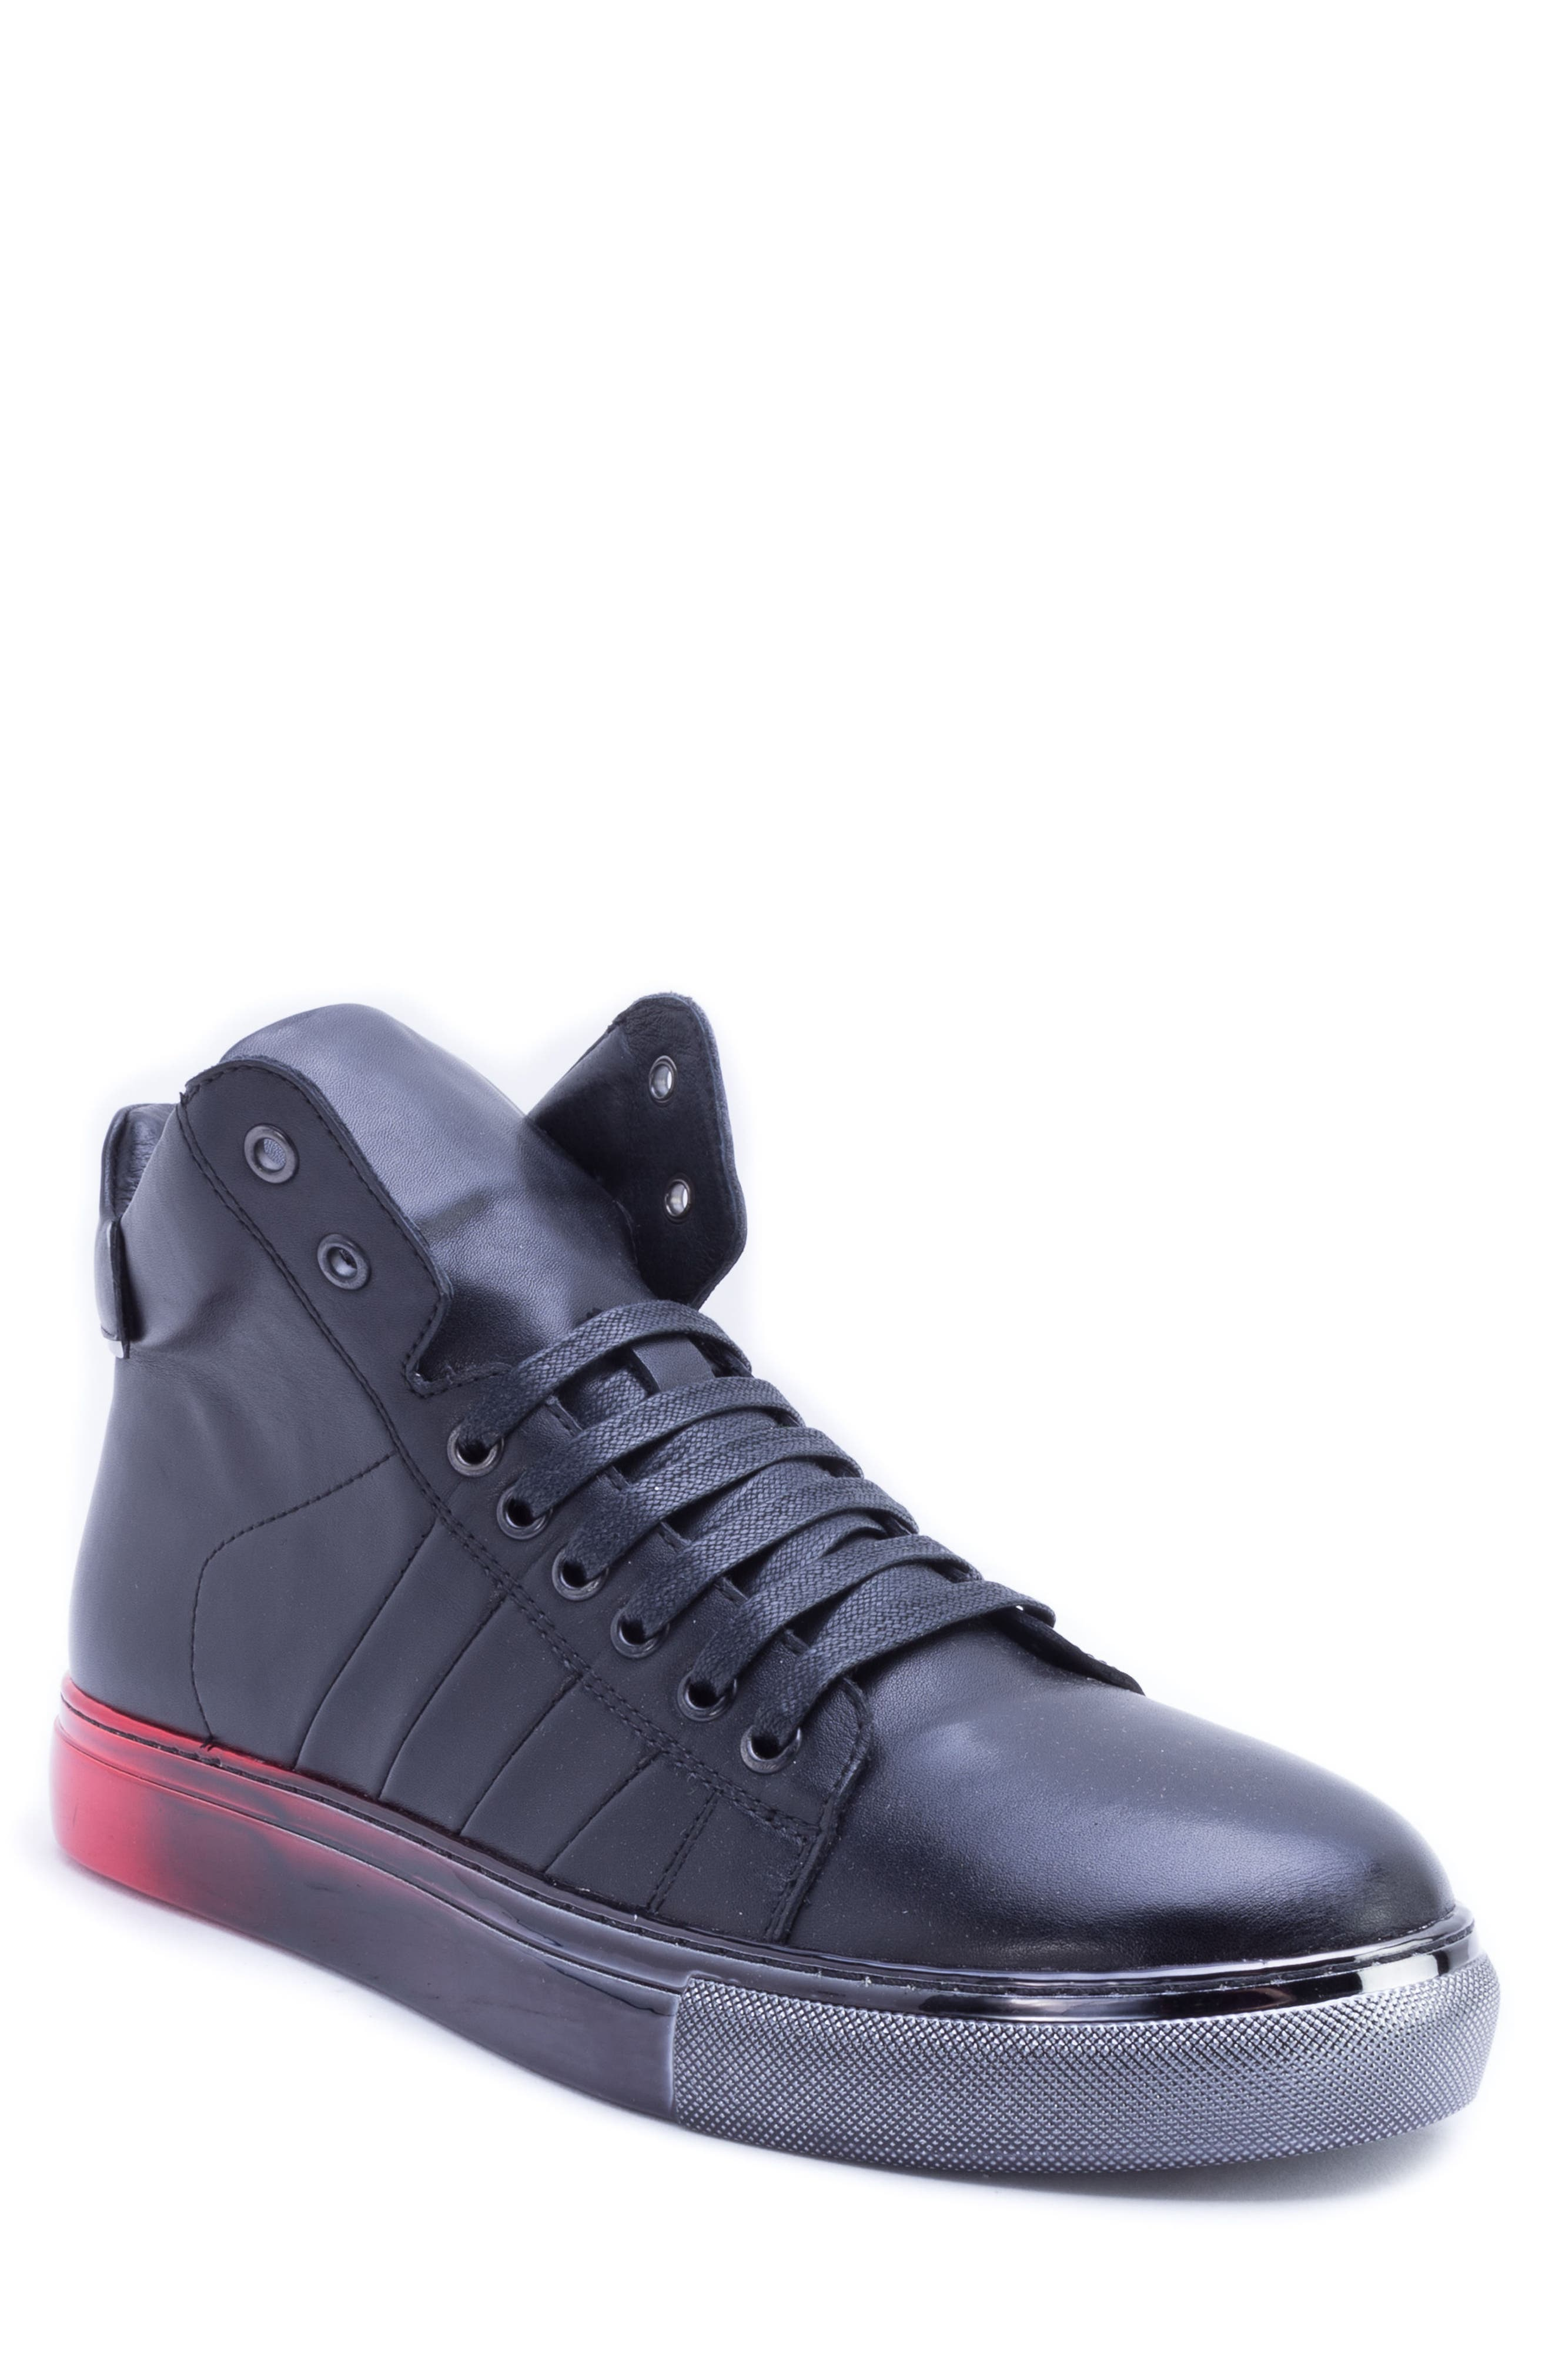 Bronson Sneaker,                             Main thumbnail 1, color,                             BLACK LEATHER